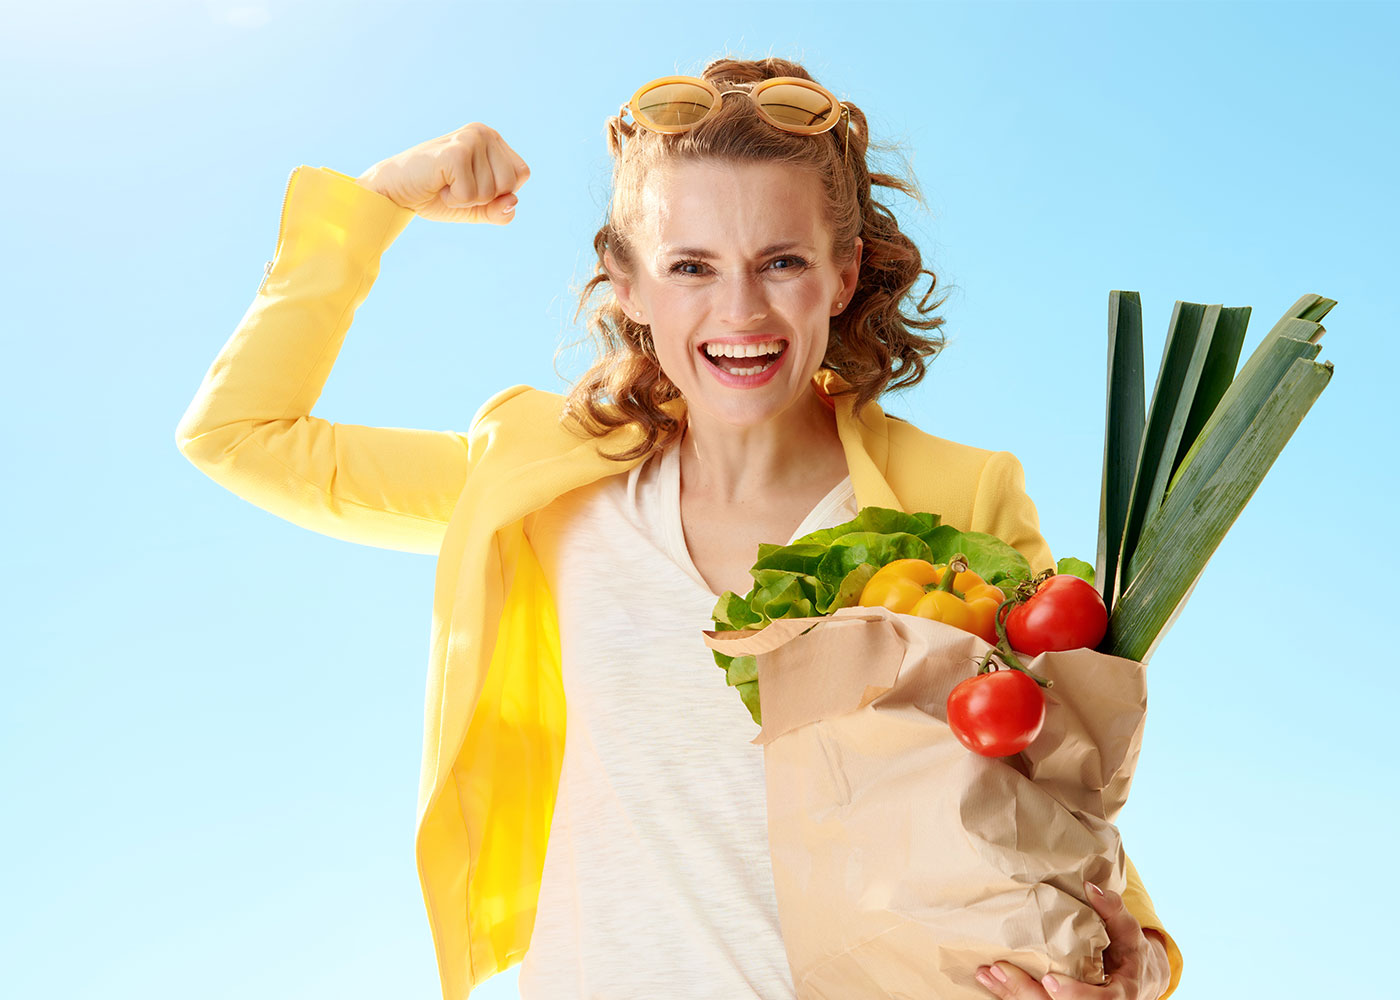 Smiling woman with paper bag with groceries showing biceps